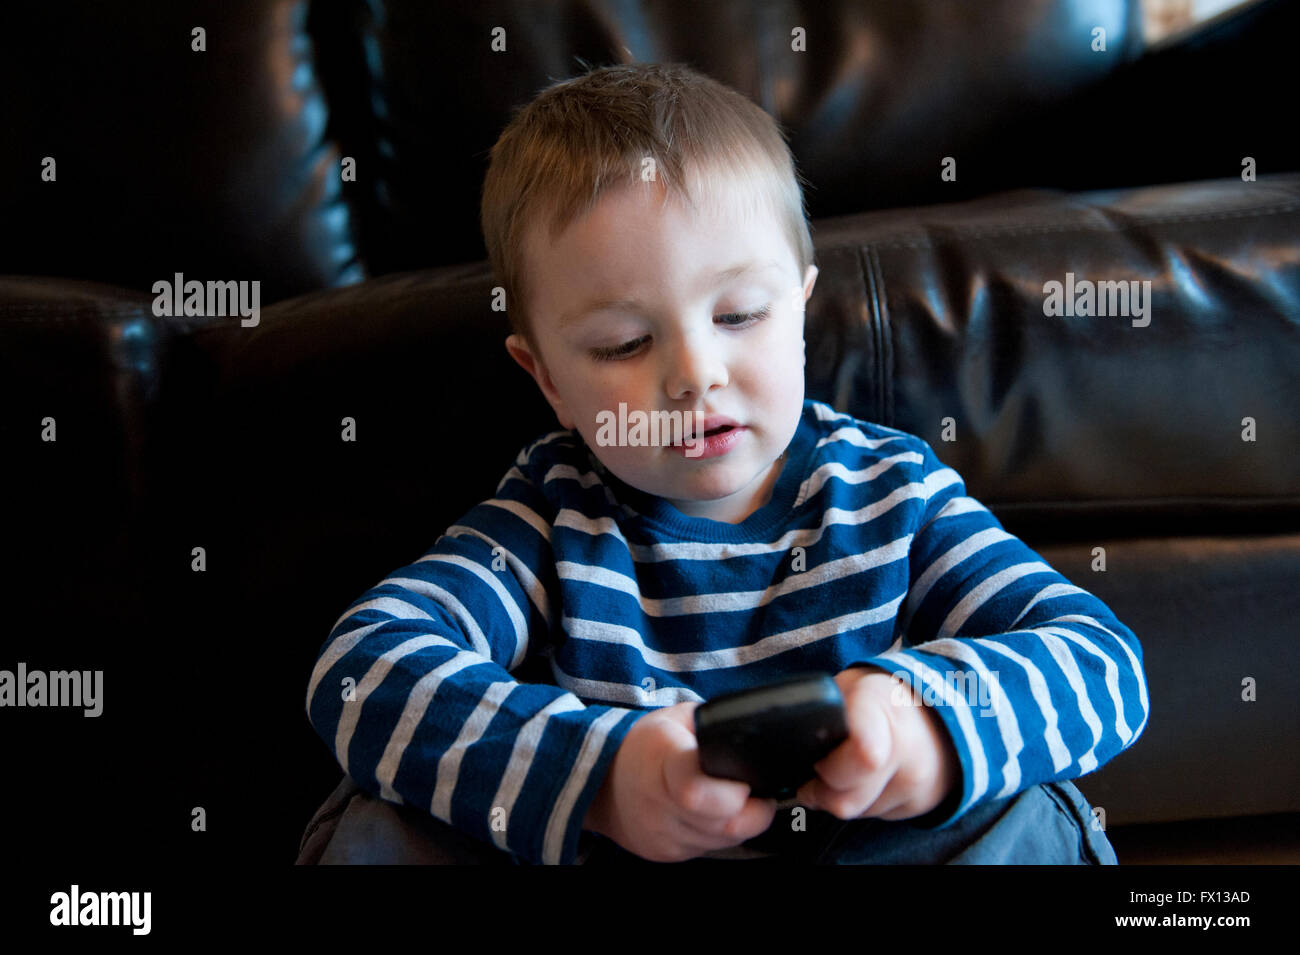 A cute little boy sitting against a brown leather sofa playing a game on a cellphone - Stock Image